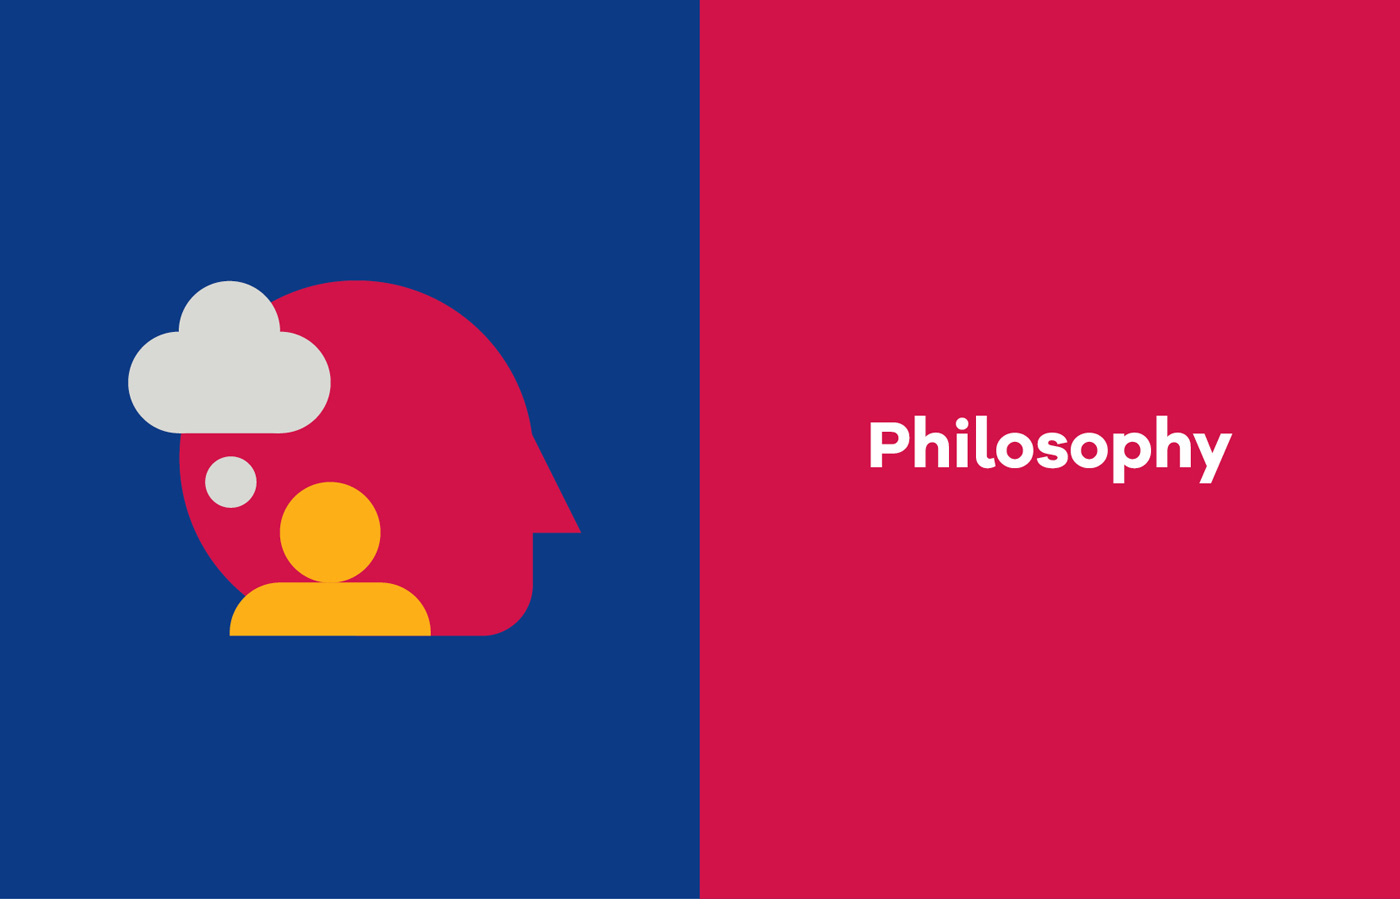 Philosophy iconography for UL Bachelor of Arts campaign